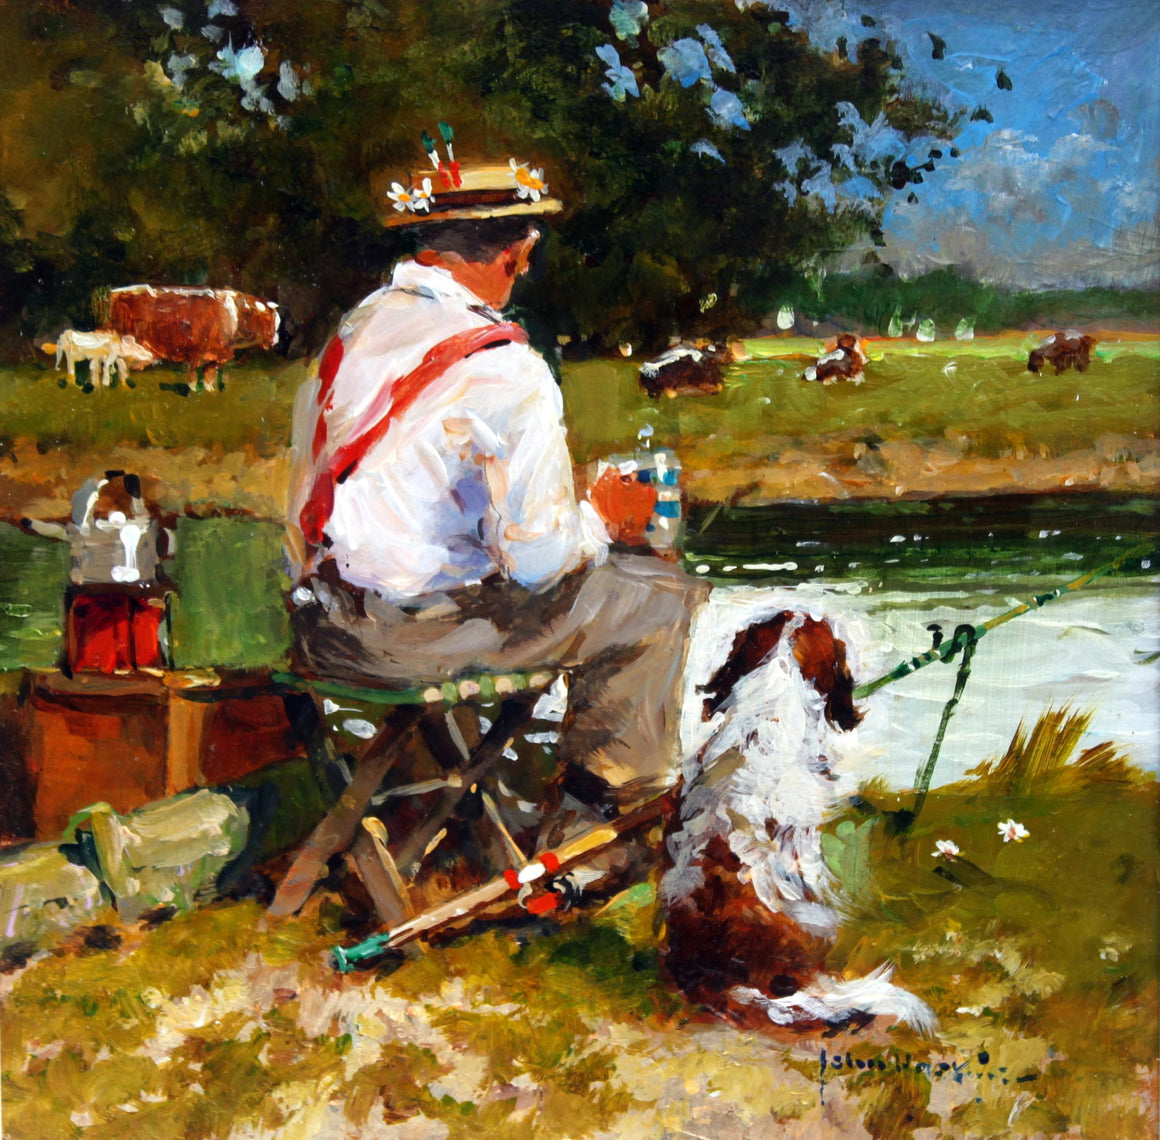 'Out For The Day' original painting by John Haskins